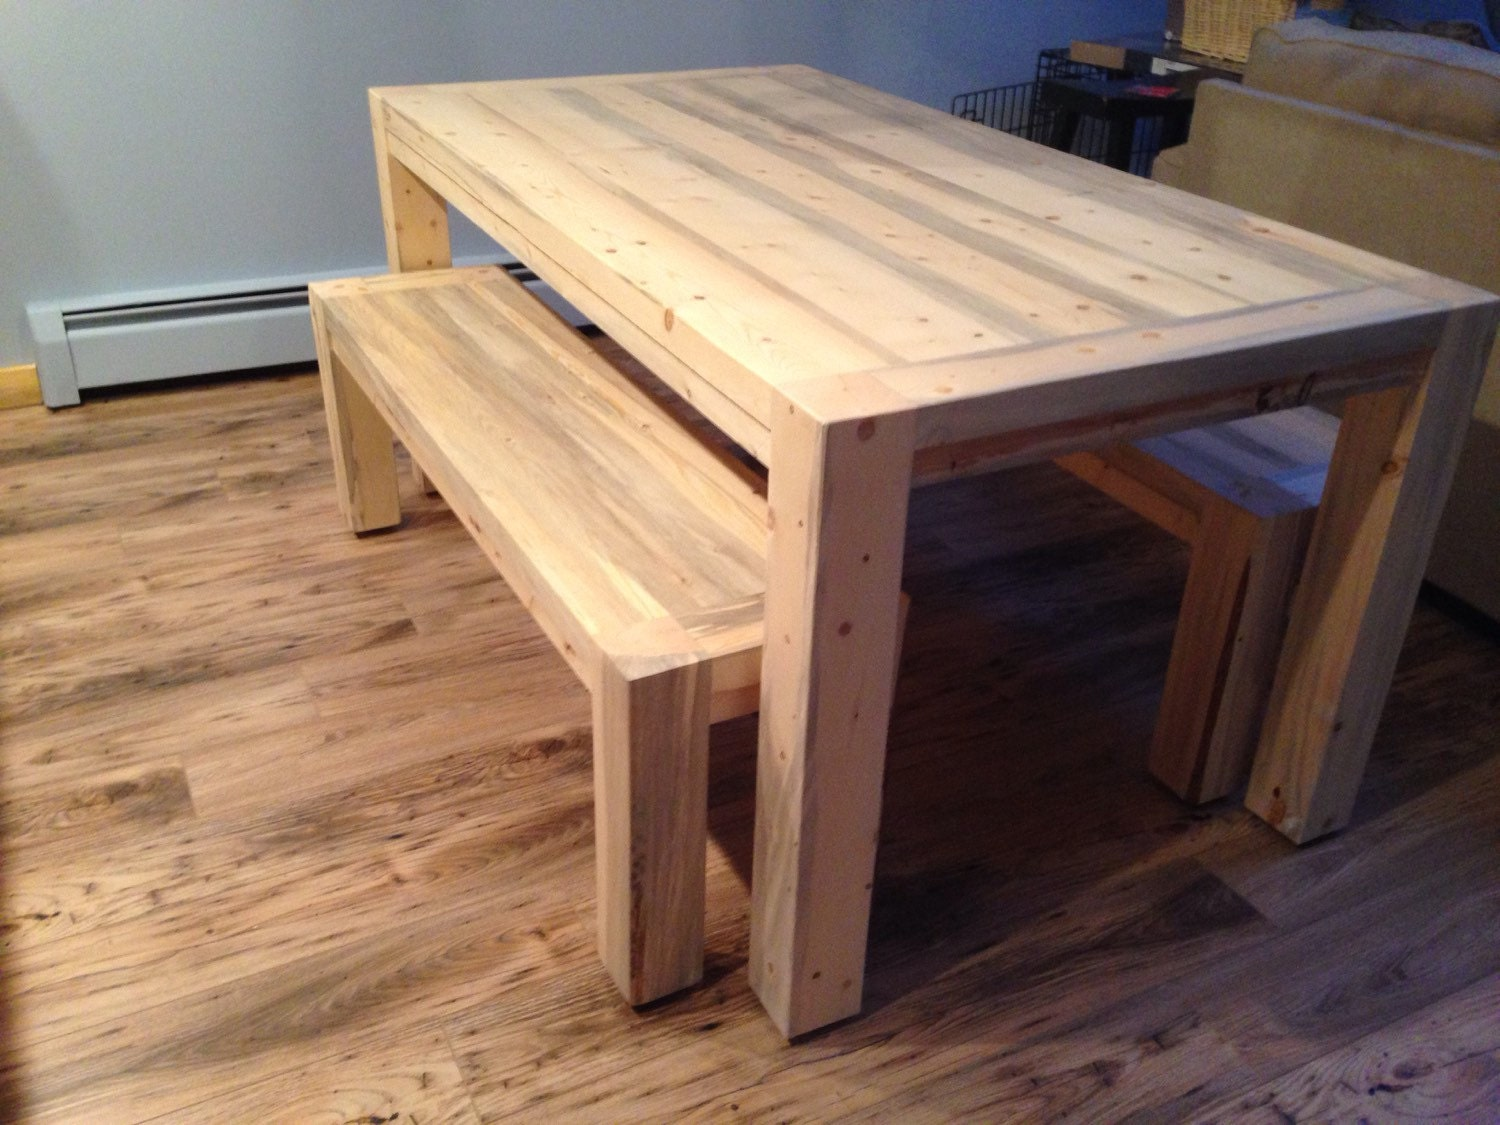 Custom beetle kill kitchen table 57 long x by coloradotablesllc - Custom kitchen table ...